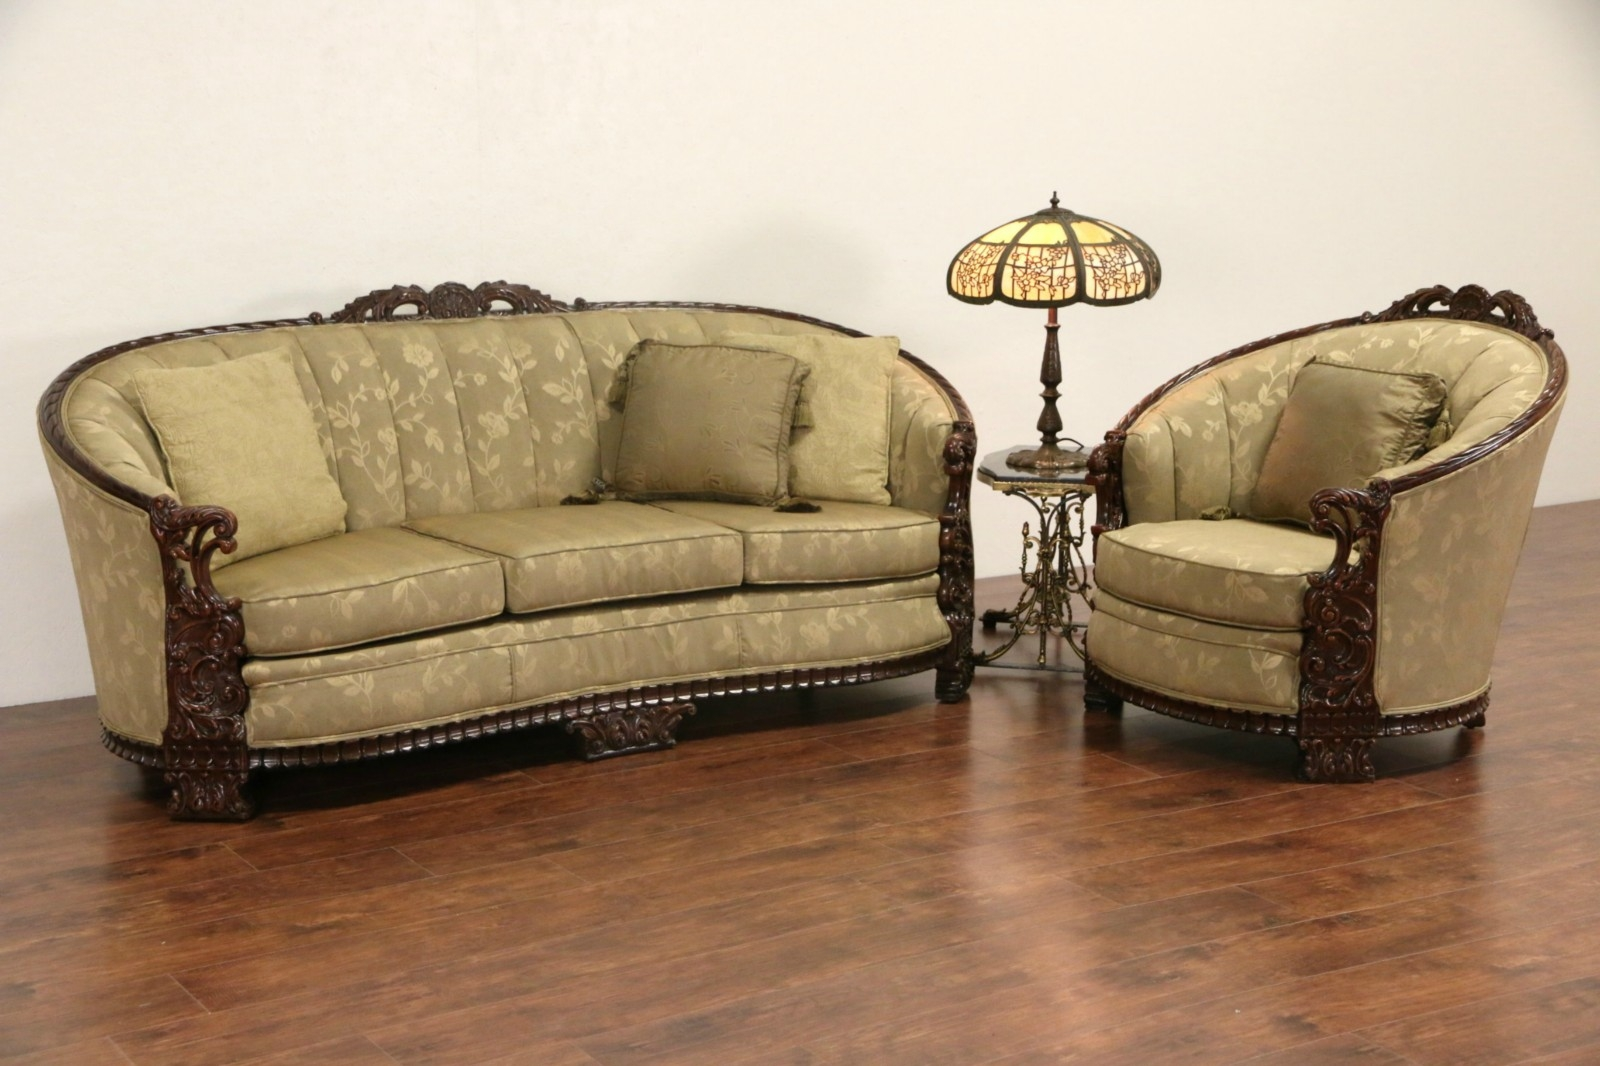 Sold Carved Sofa Club Chair Set 1930s Vintage New Regarding 1930s Couch (Image 10 of 15)